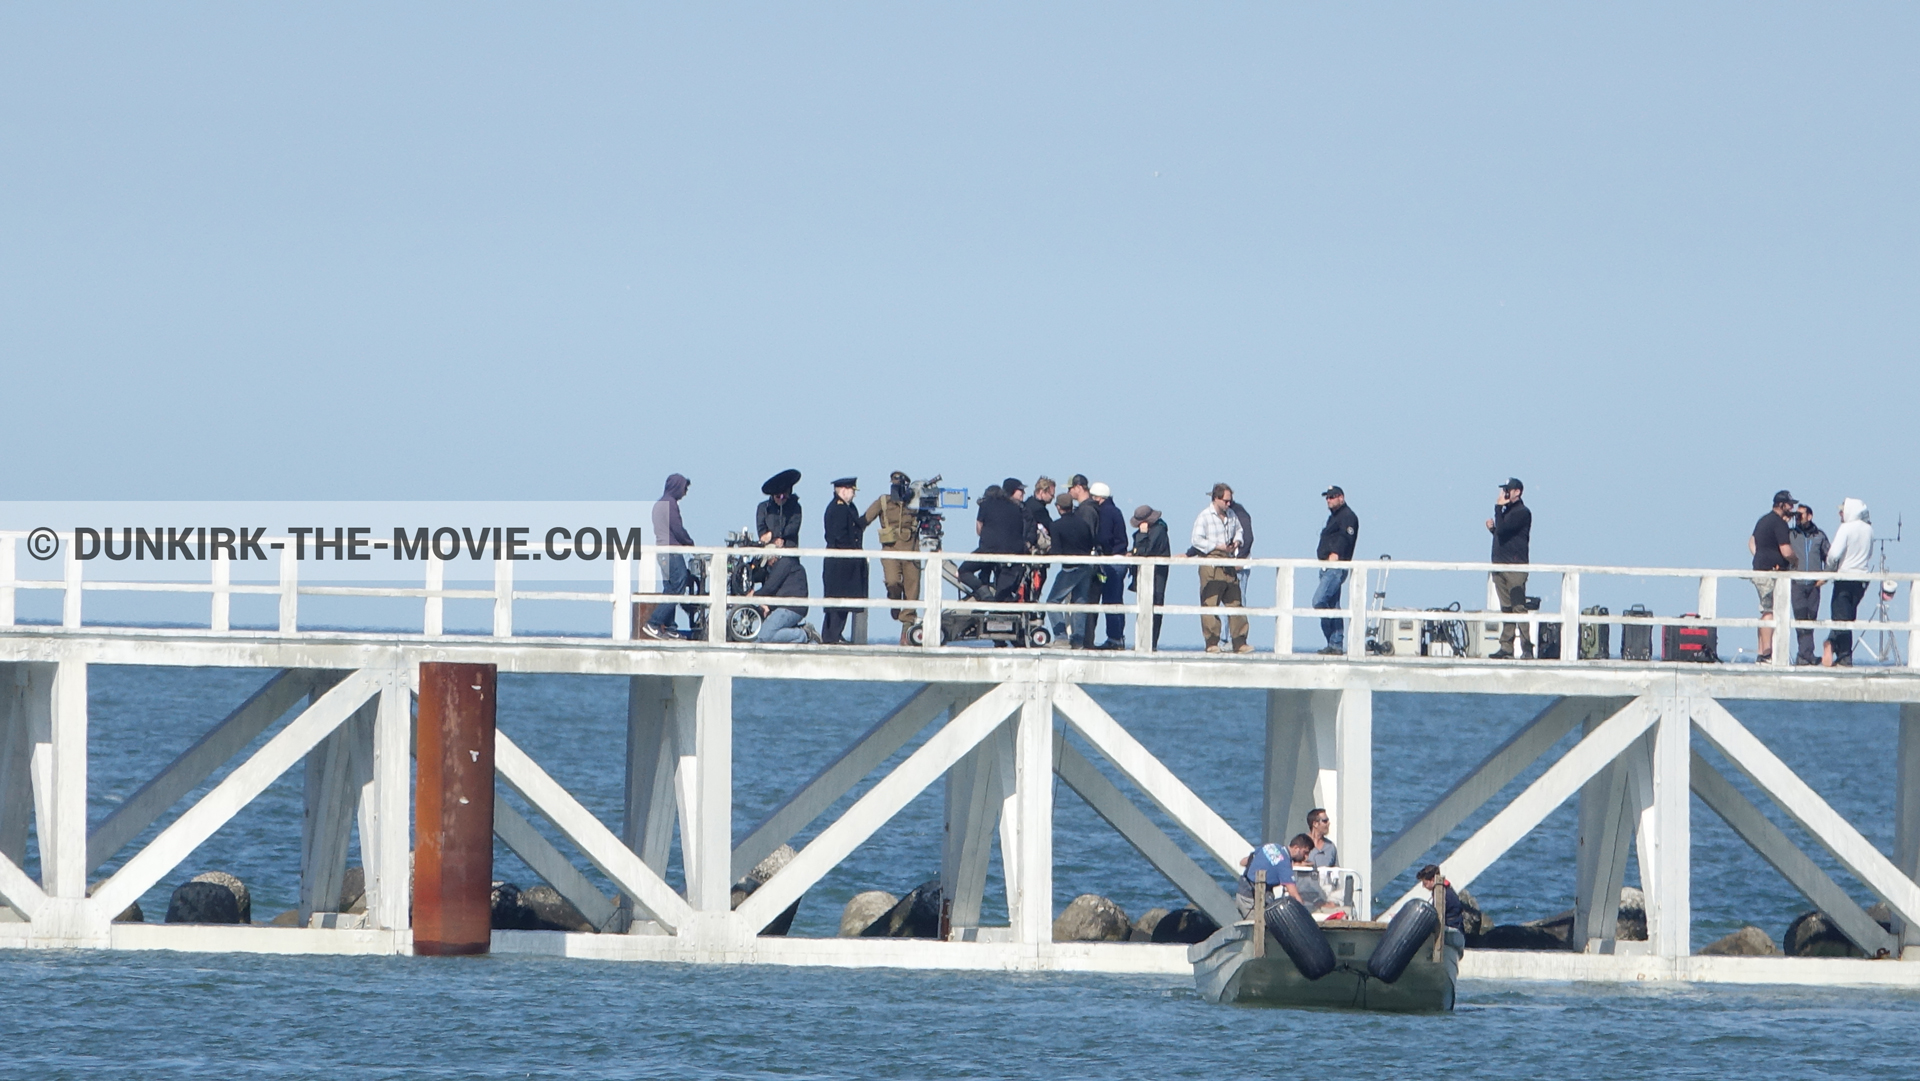 Picture with actor, IMAX camera, blue sky, EST pier, Kenneth Branagh, Christopher Nolan, technical team, inflatable dinghy,  from behind the scene of the Dunkirk movie by Nolan